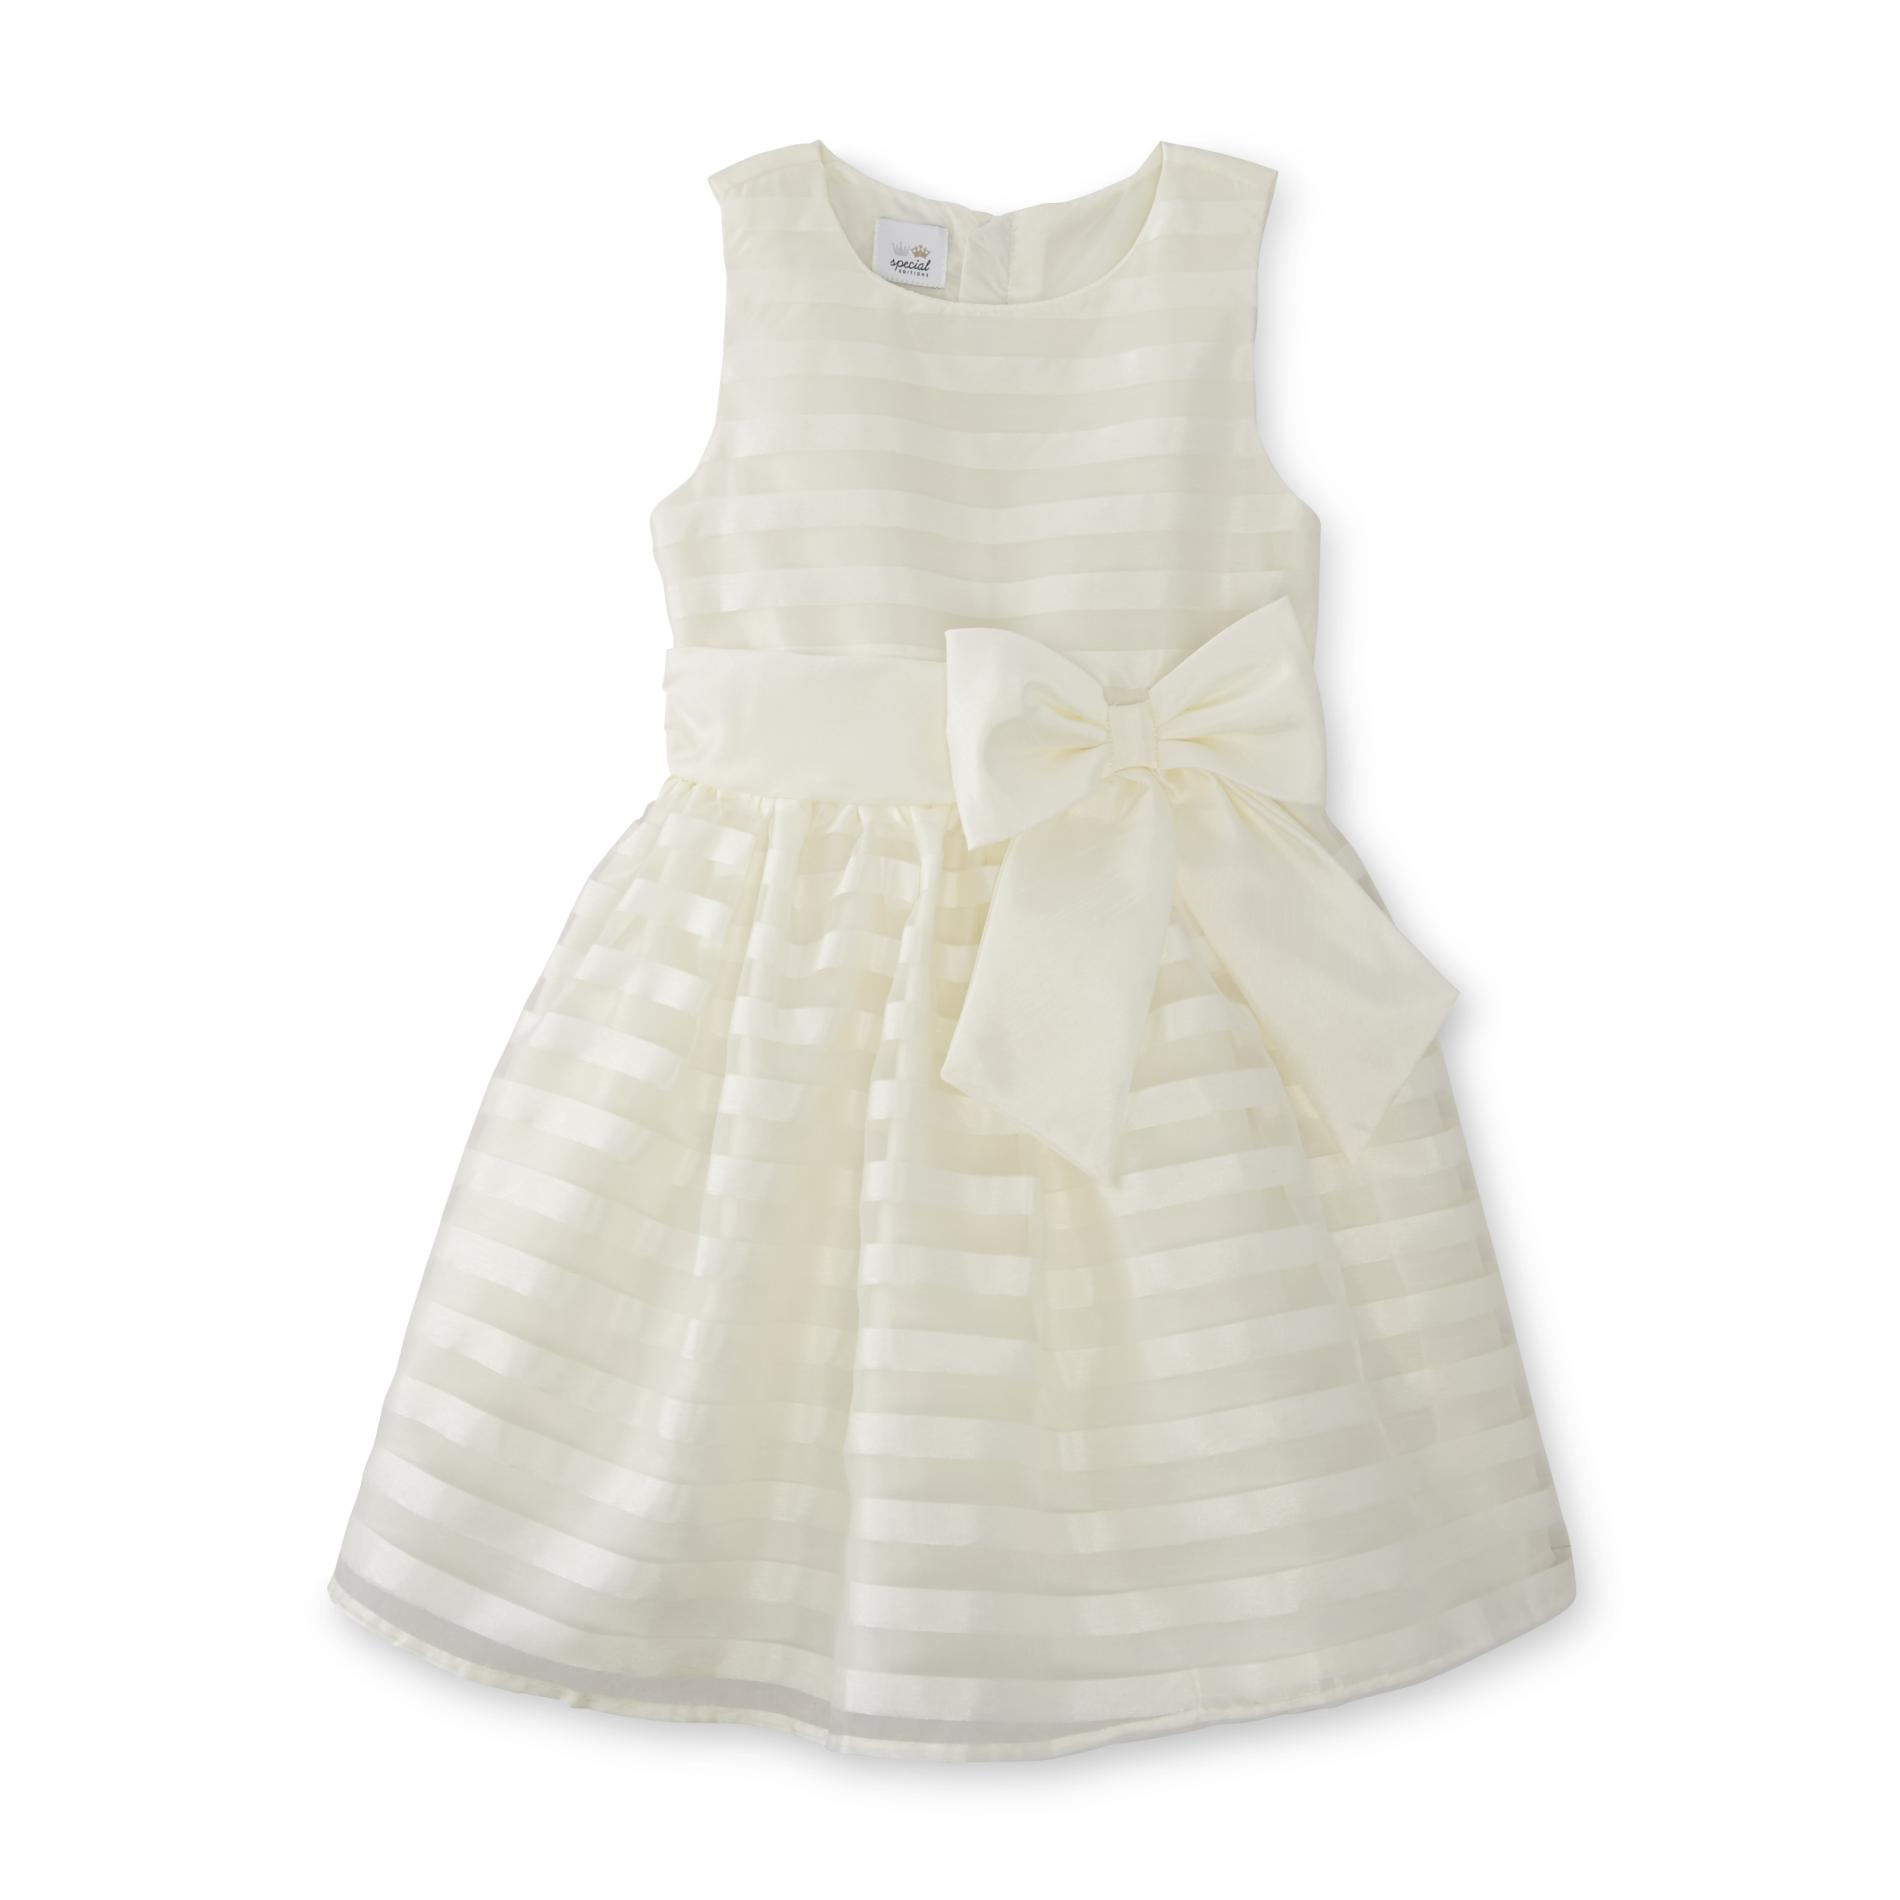 Special Editions Girls' Party Dress - Striped, Size: 7, Yellow im test